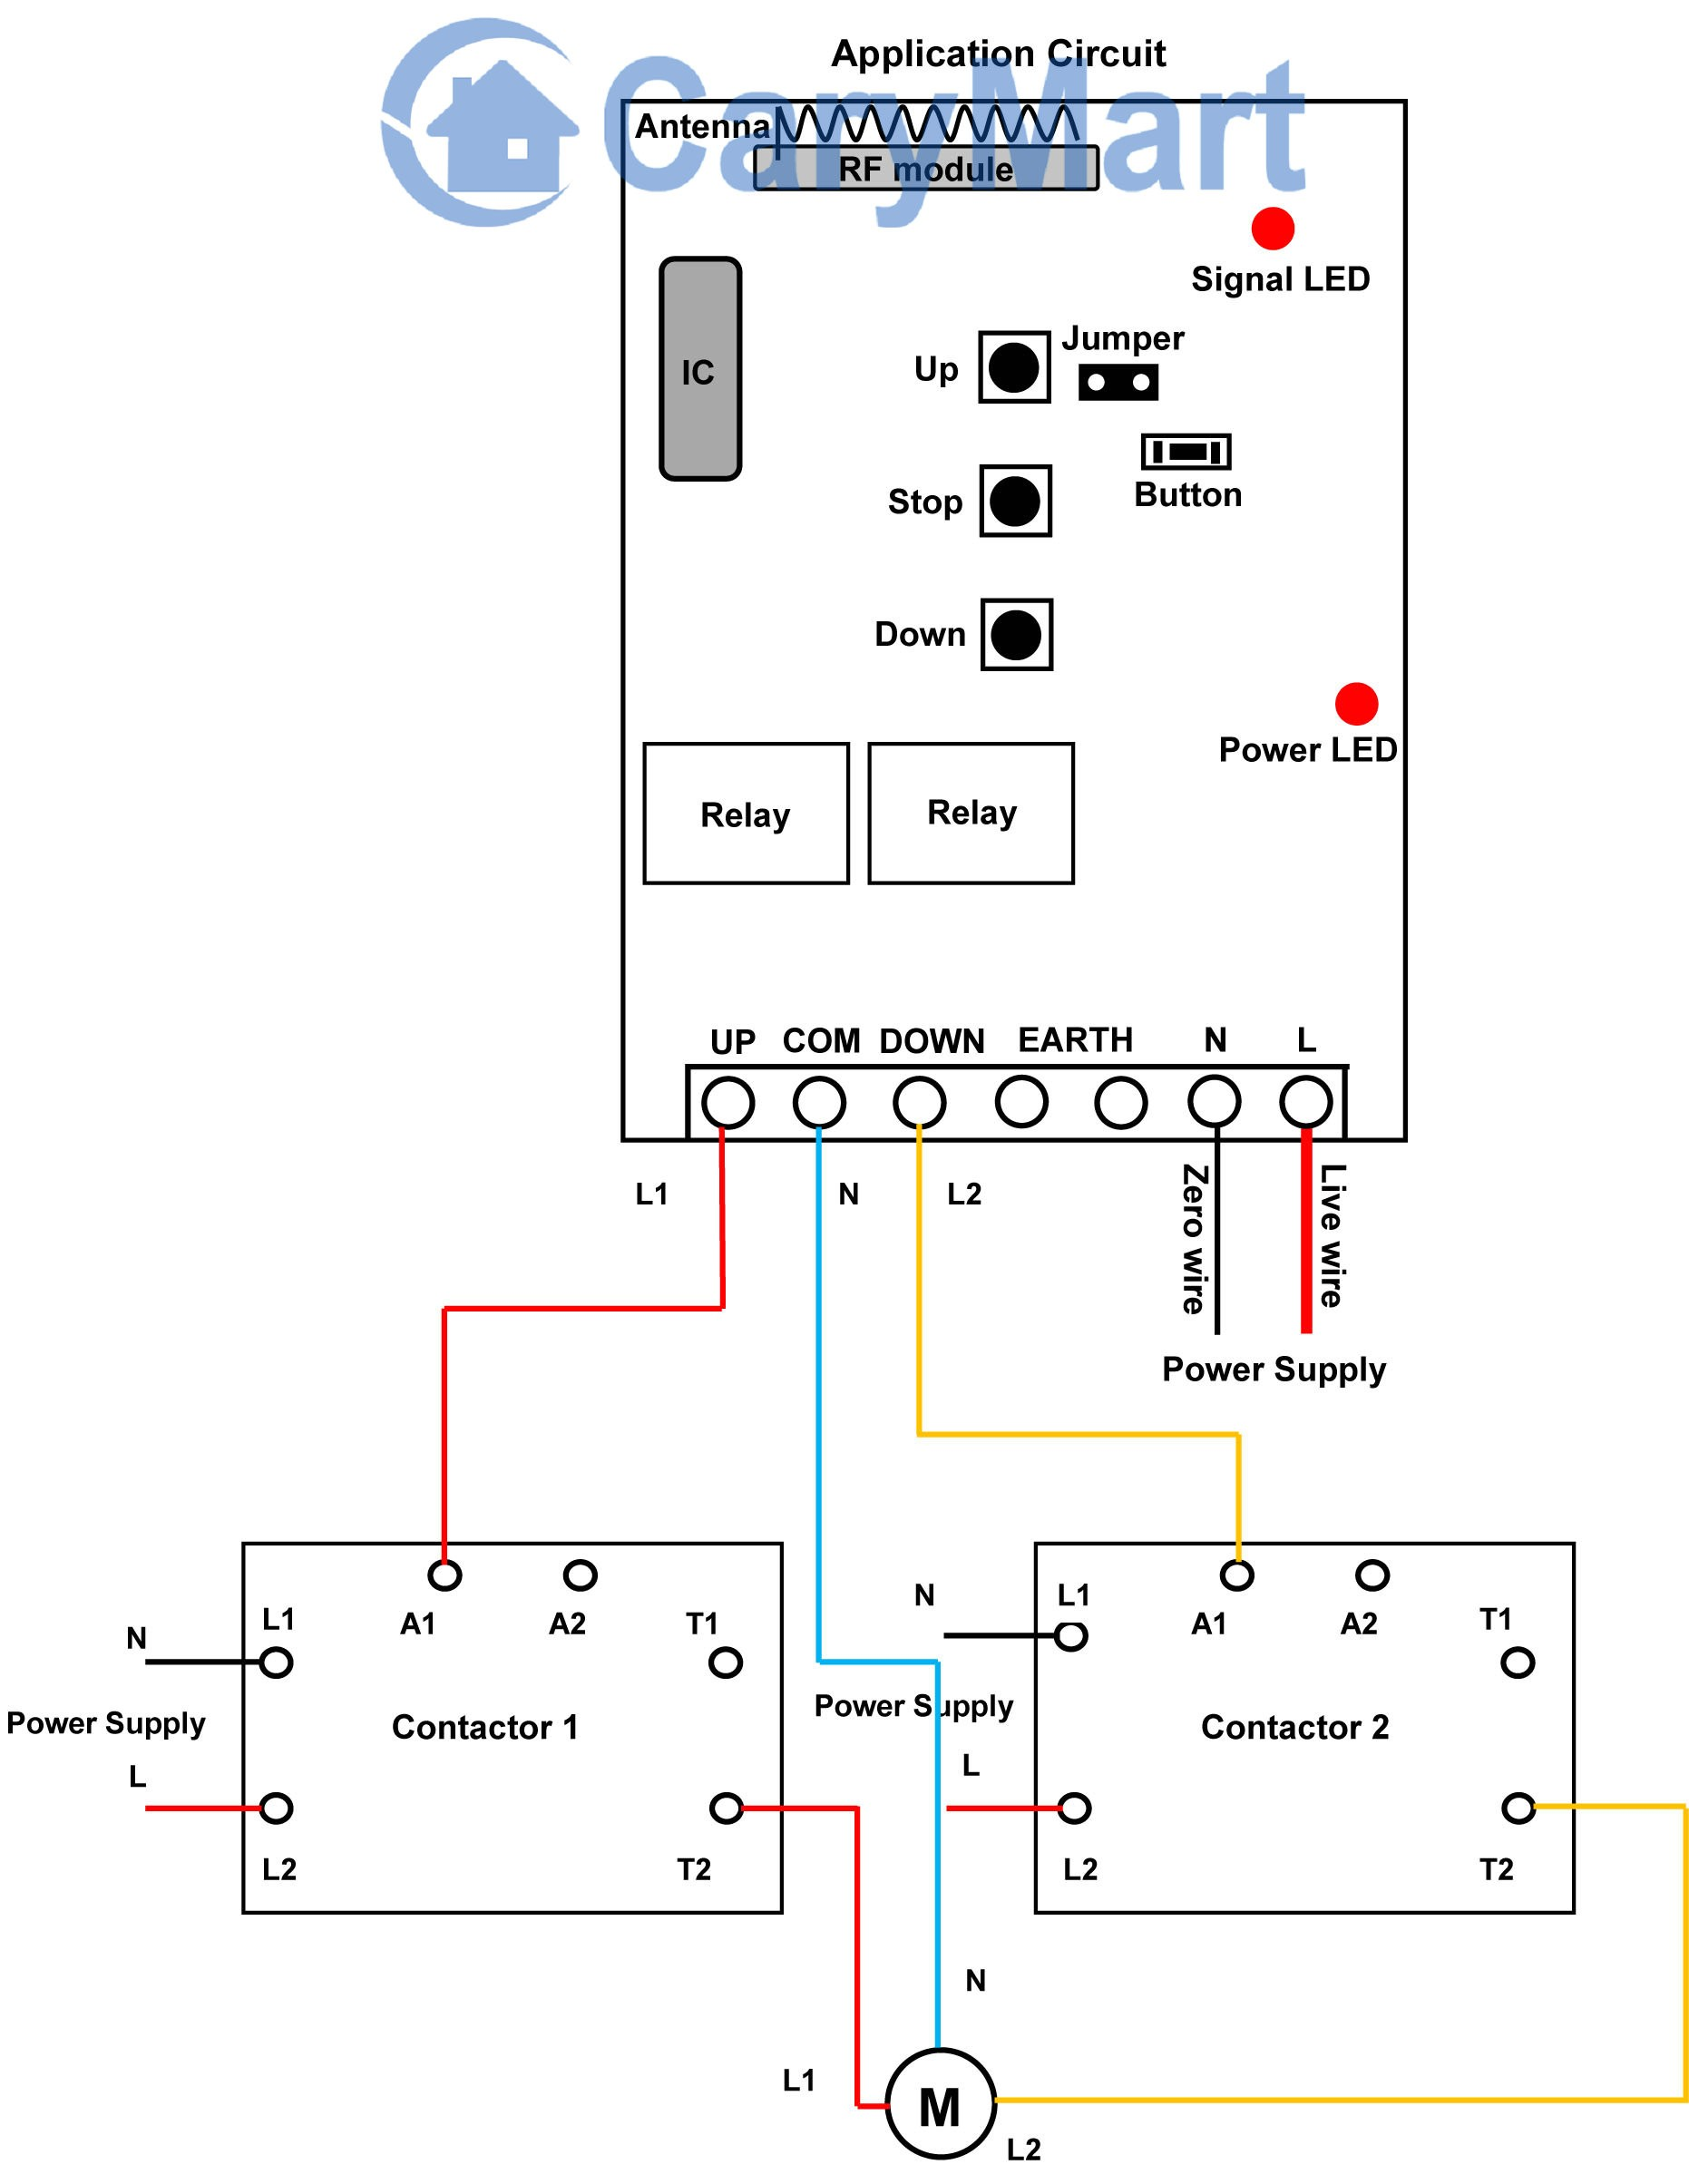 WRG-4671] Valet Car Starter Wiring Diagram on